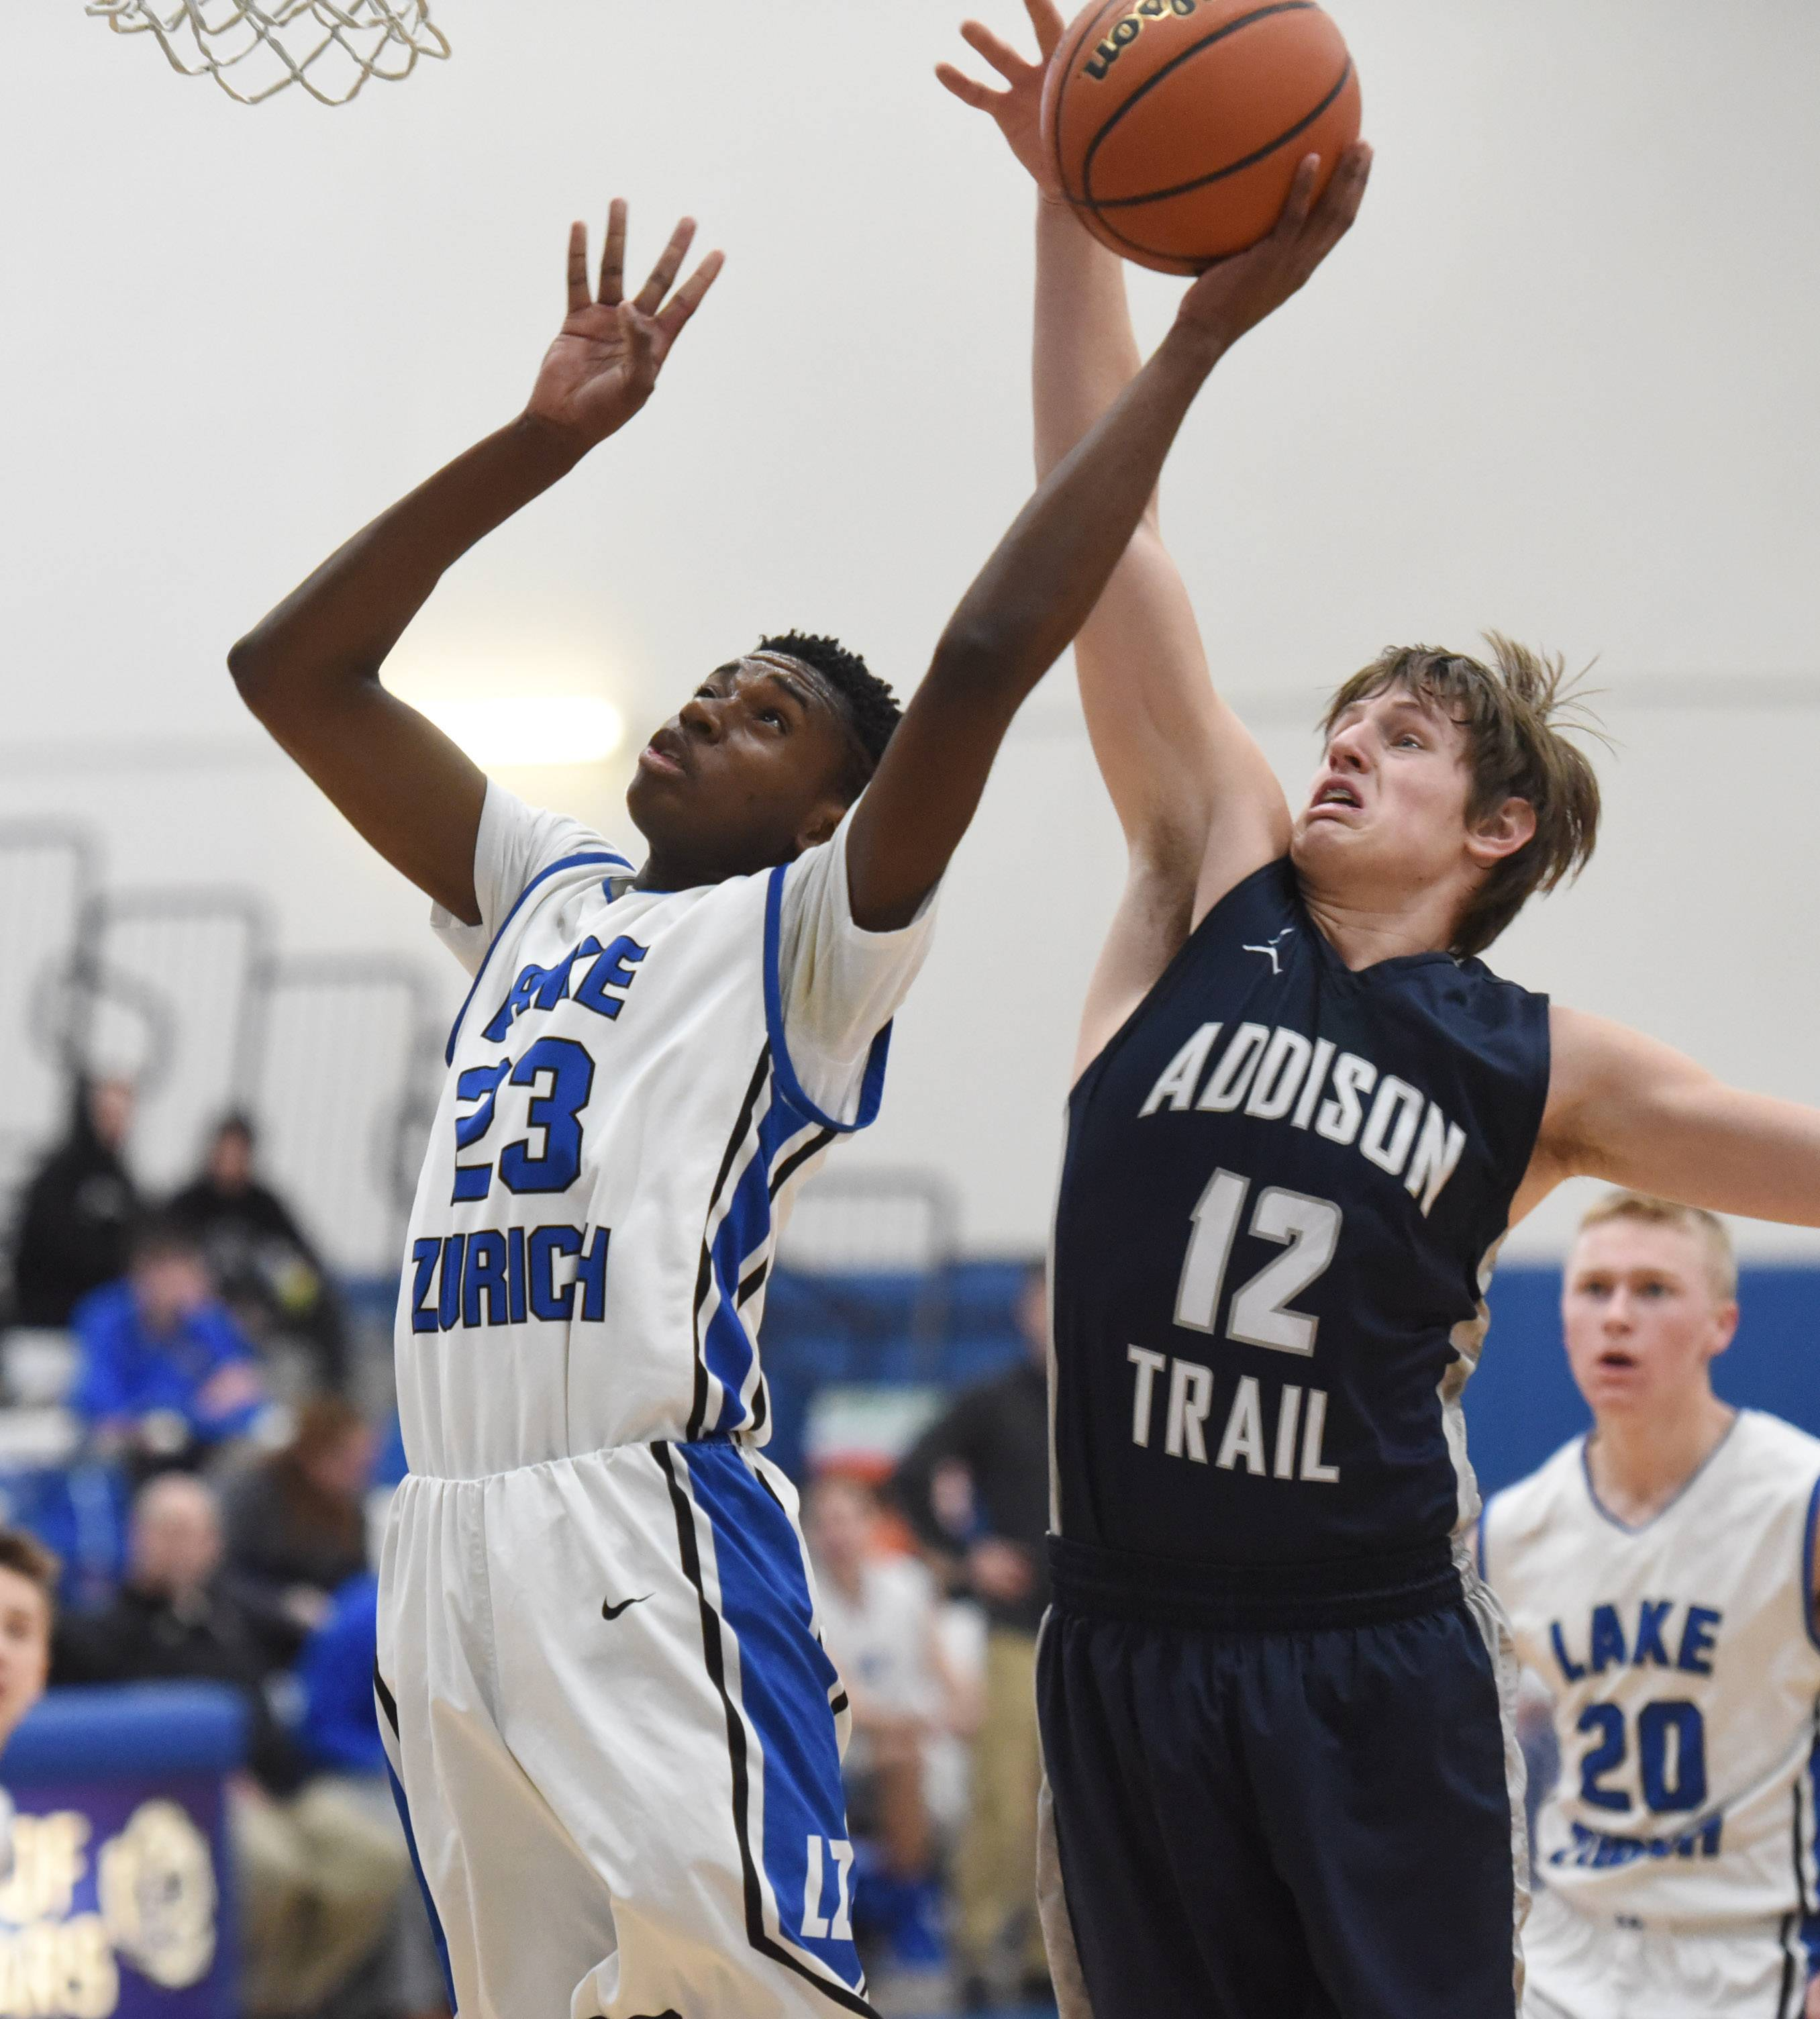 Lake Zurich's Kenny Haynes (23) goes to the hoop under defensive pressure of Addison Trail's A.J. Parnell during Monday's basketball game in Lake Zurich.